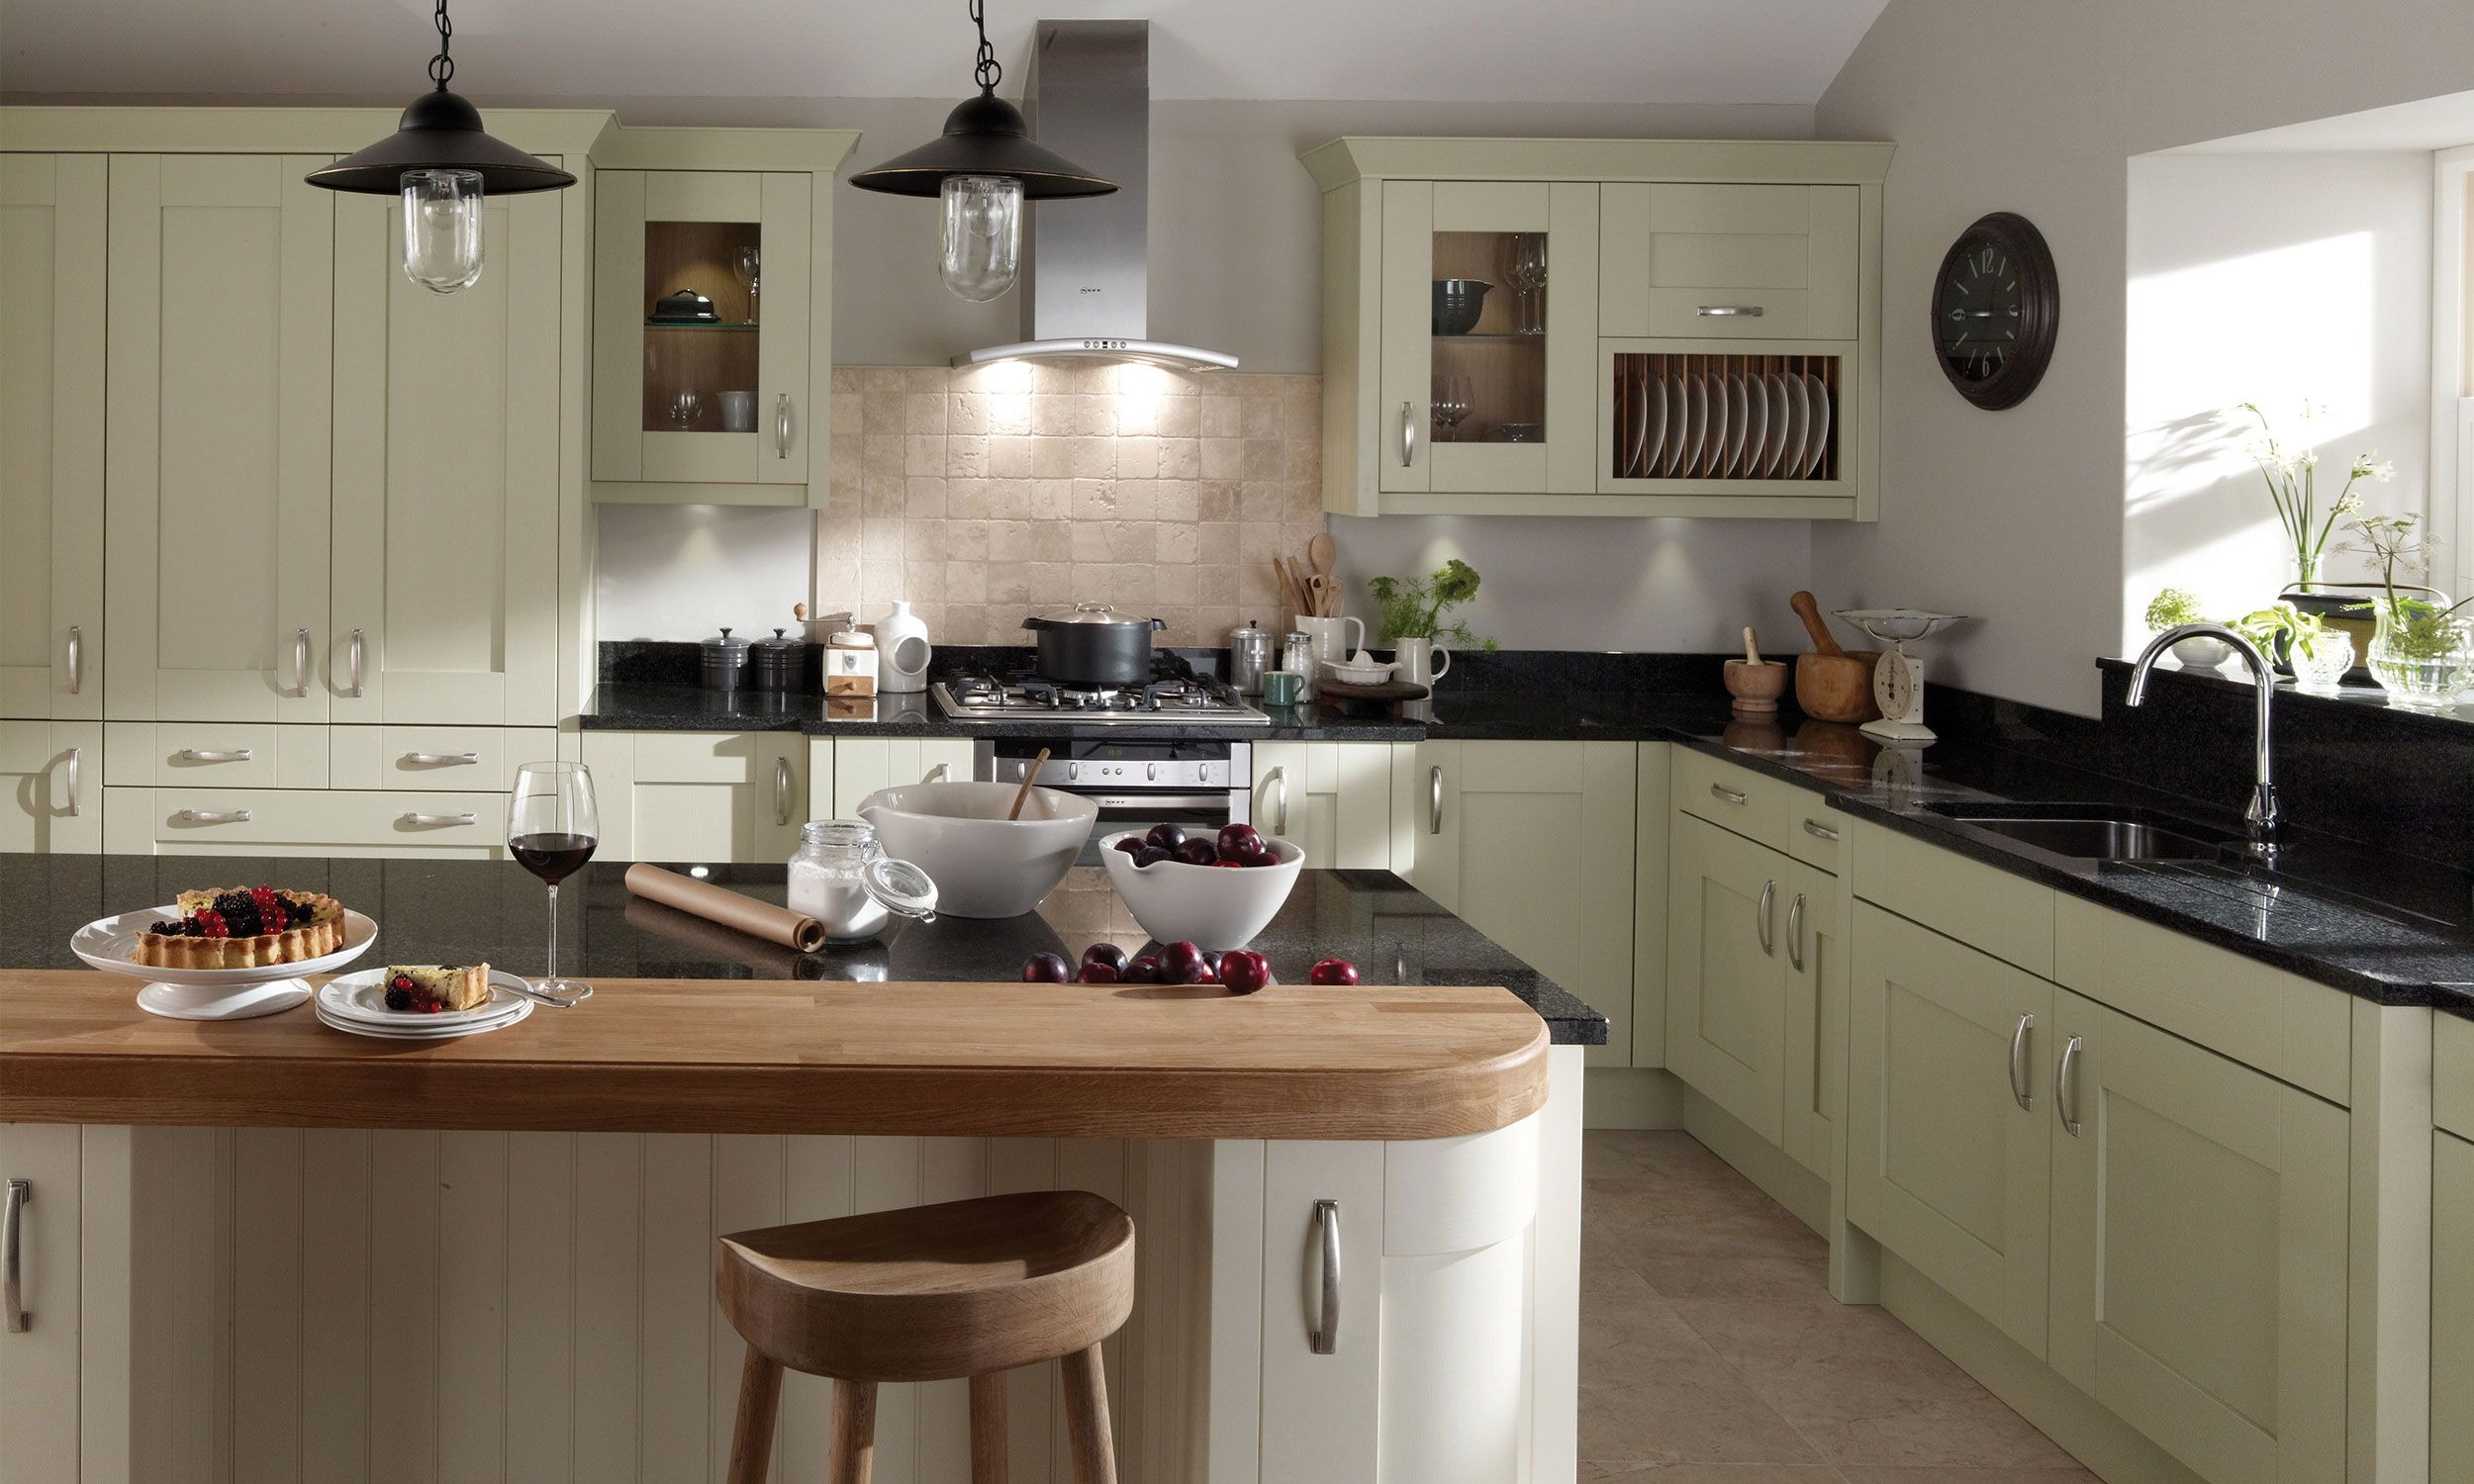 Milbourne Kitchen fittings, Kitchen concepts, Country